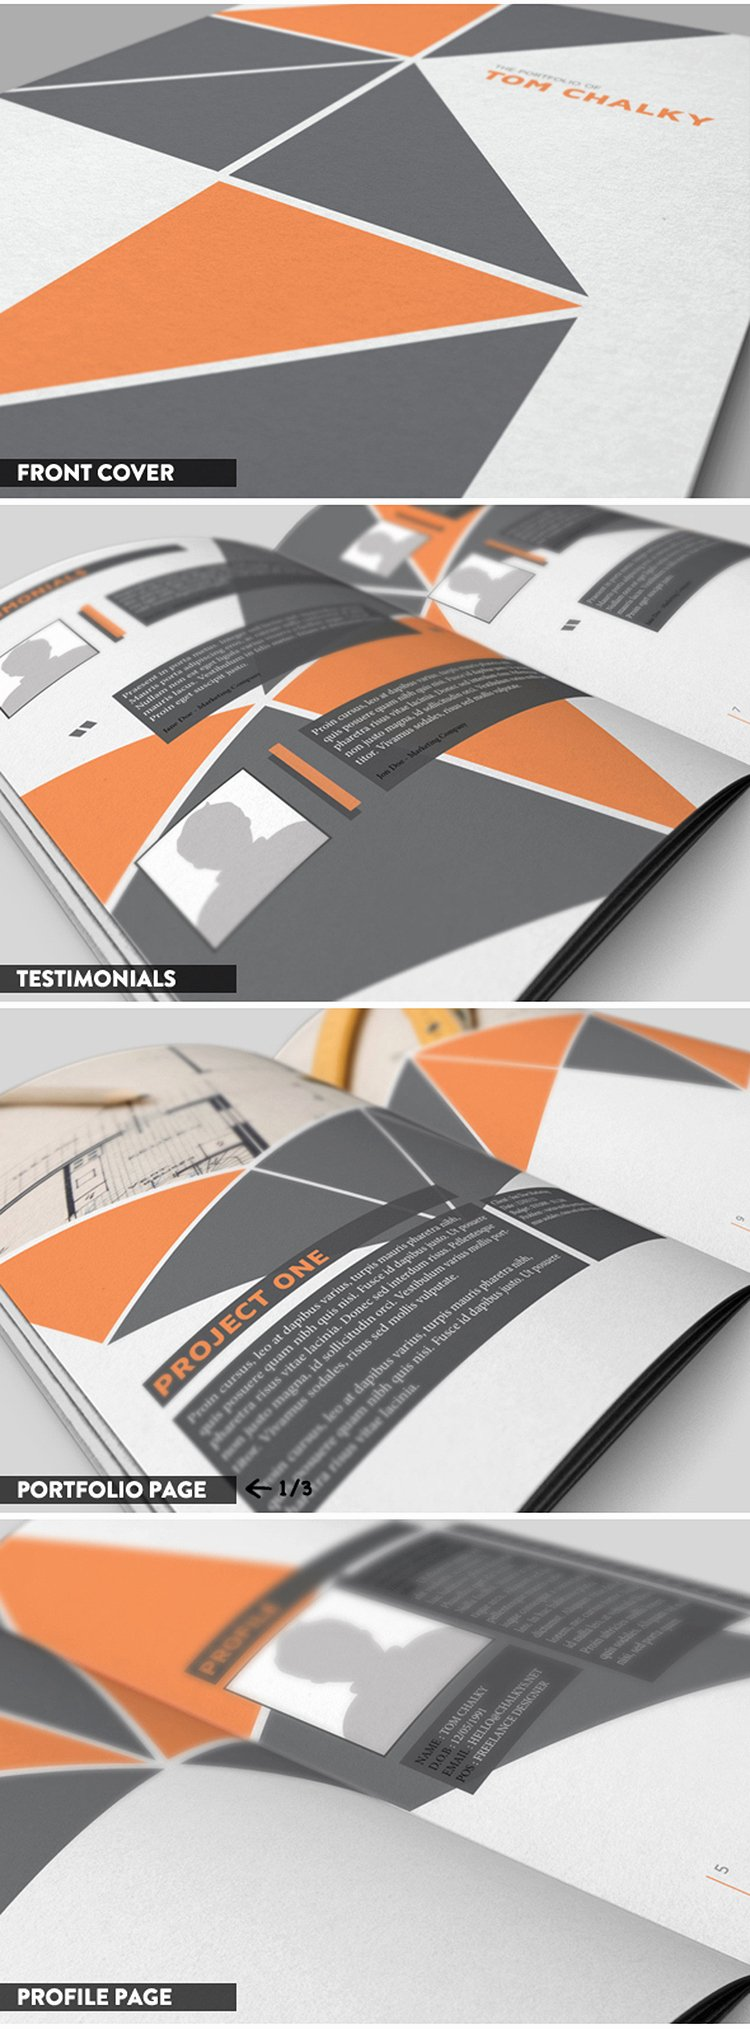 Indesign Portfolio Template Free New Free 16 Page Case Study Portfolio Booklet Download